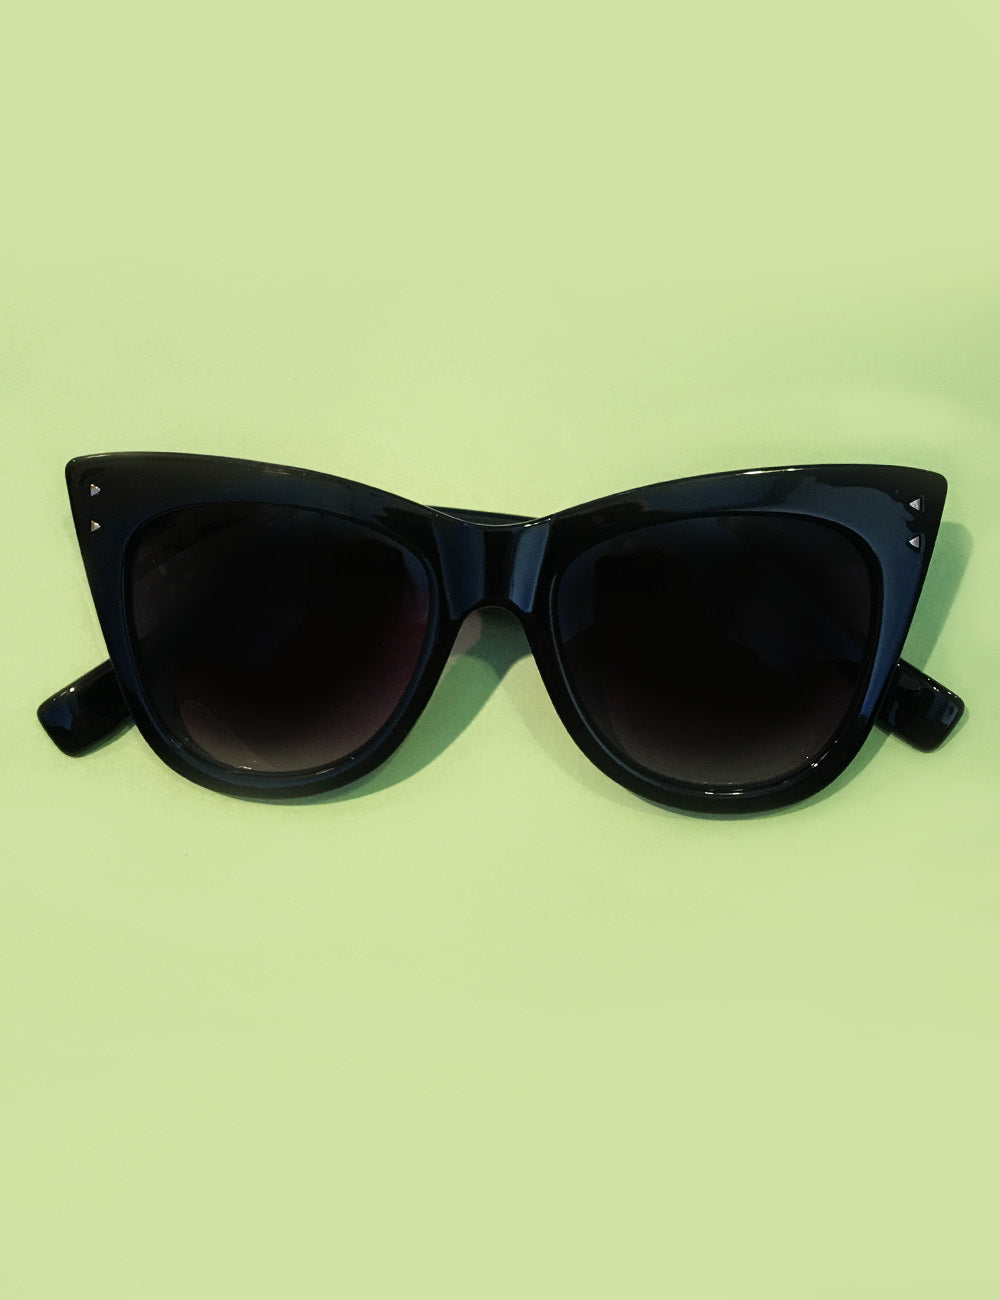 Solid Black Retro Classic Framed Sunglasses